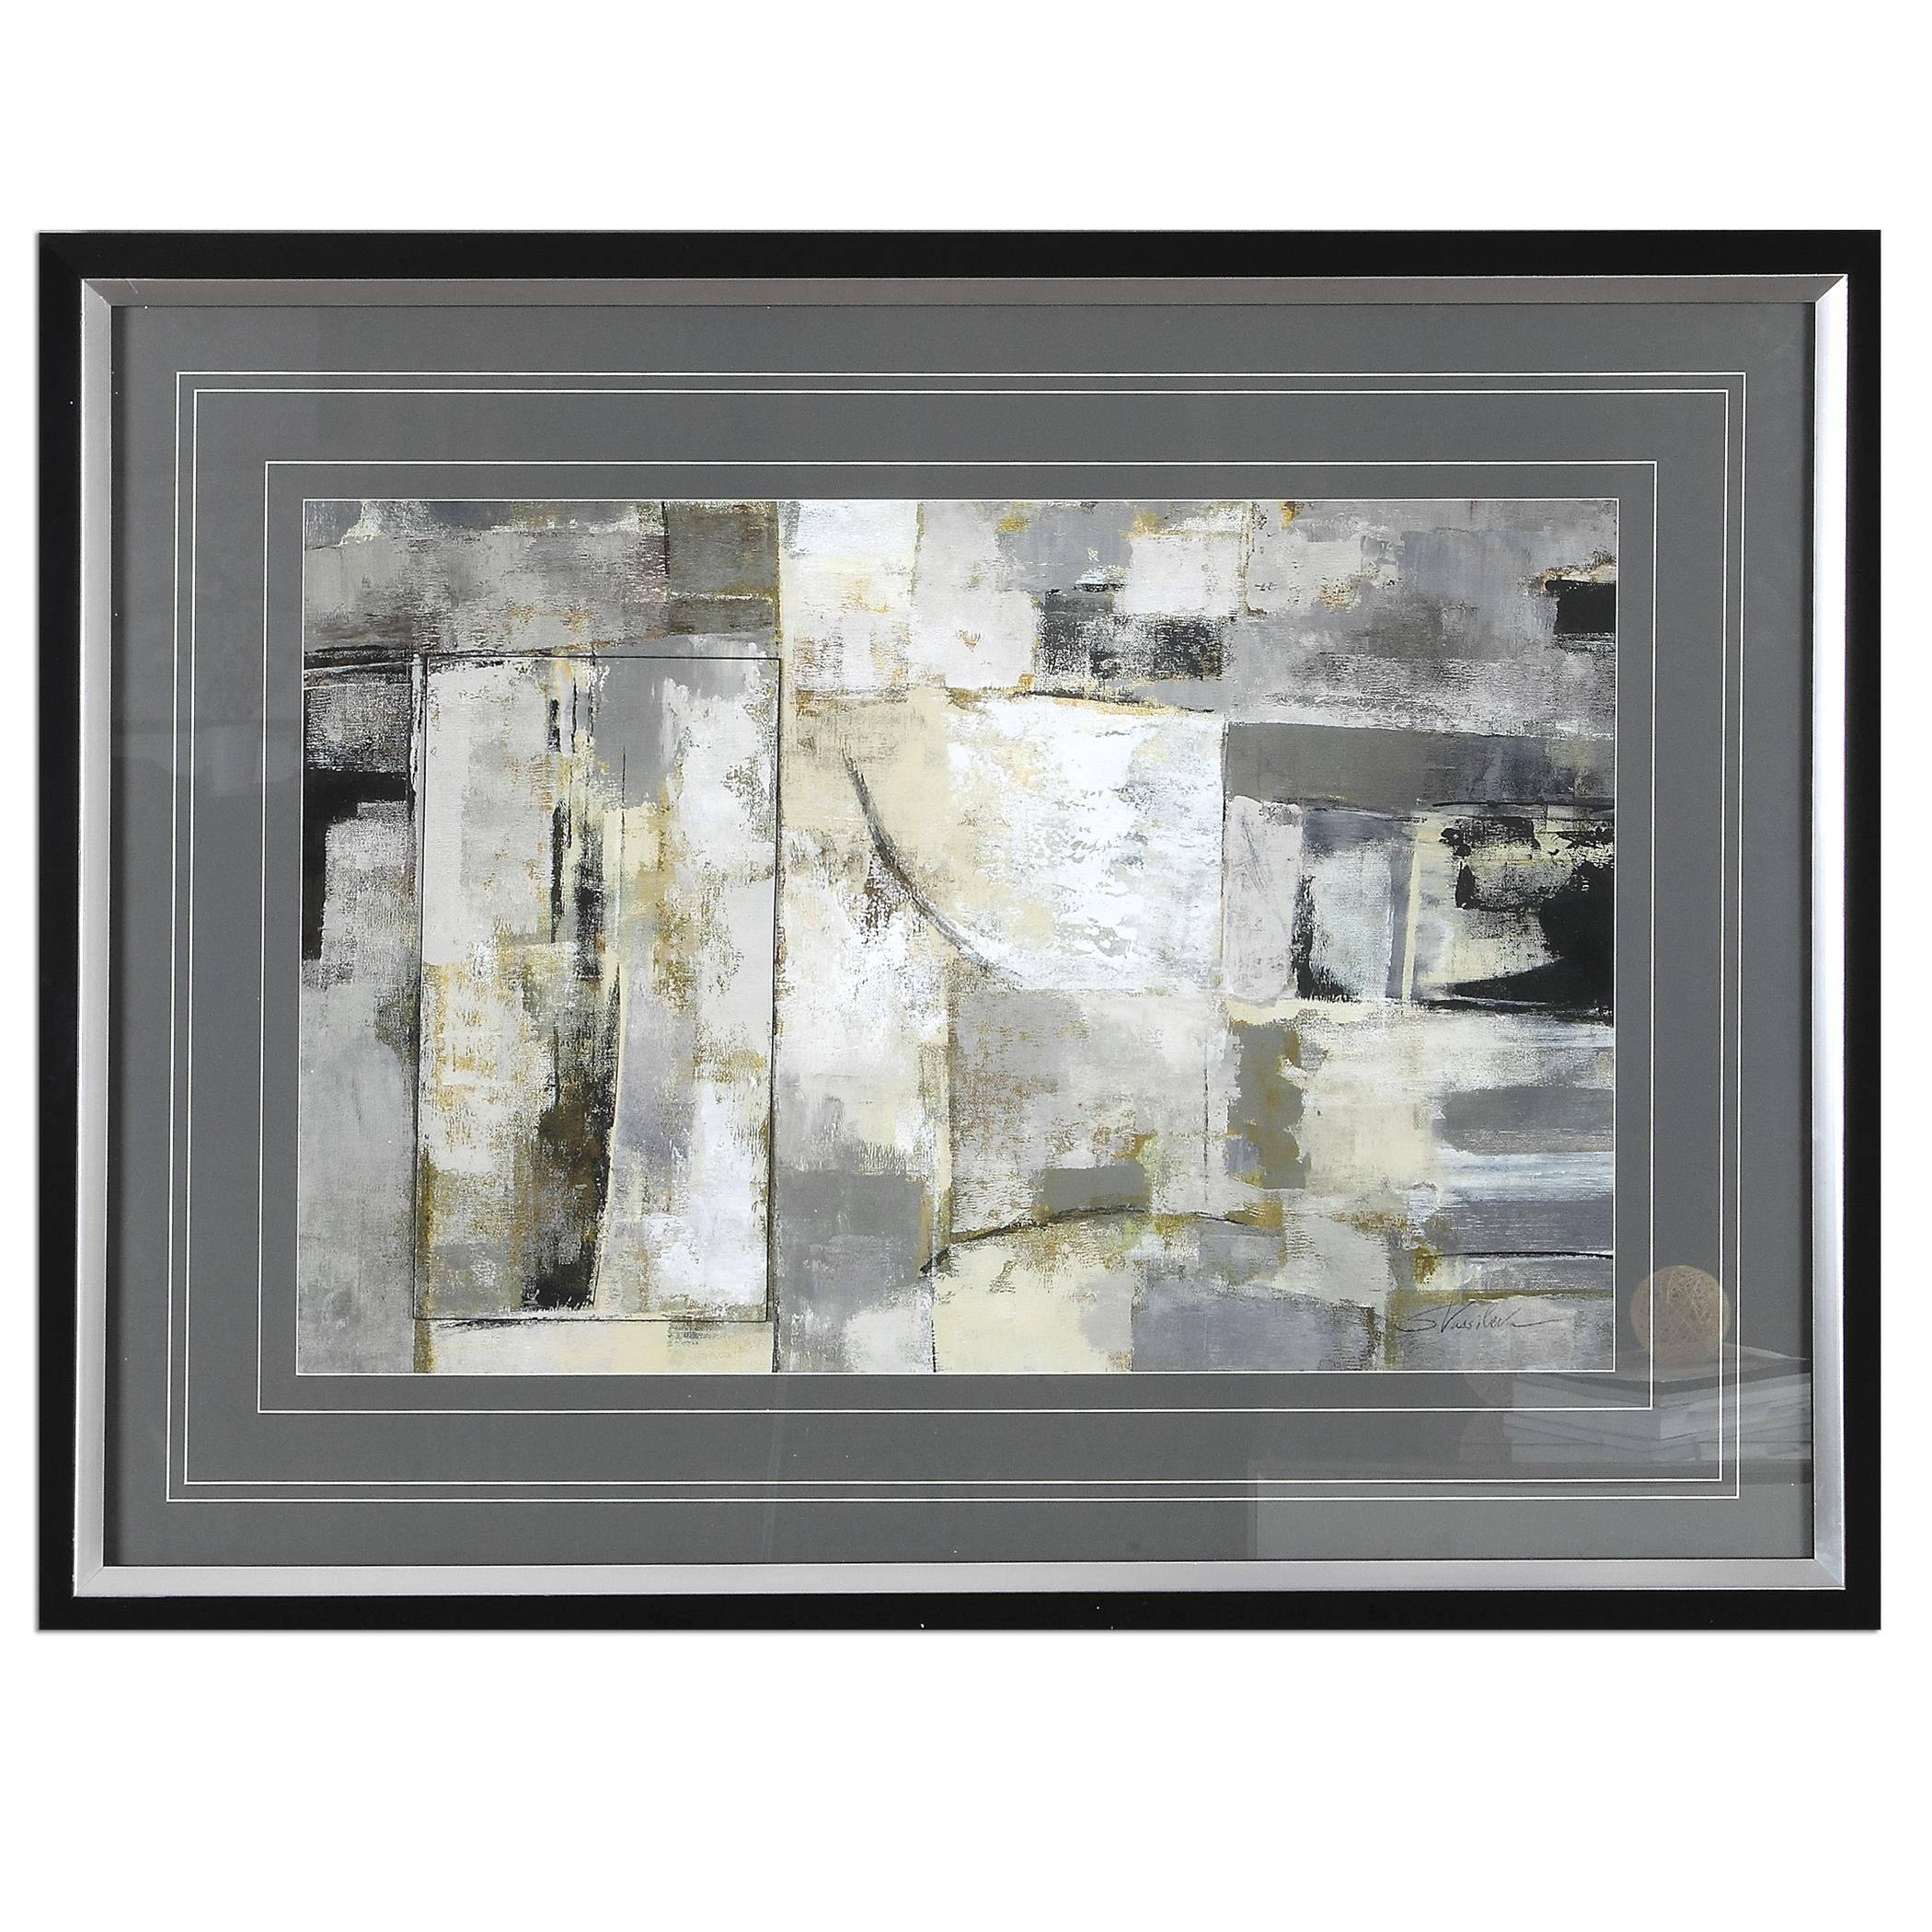 Uttermost Art Walking Down The Street Abstract Art - Item Number: 33615